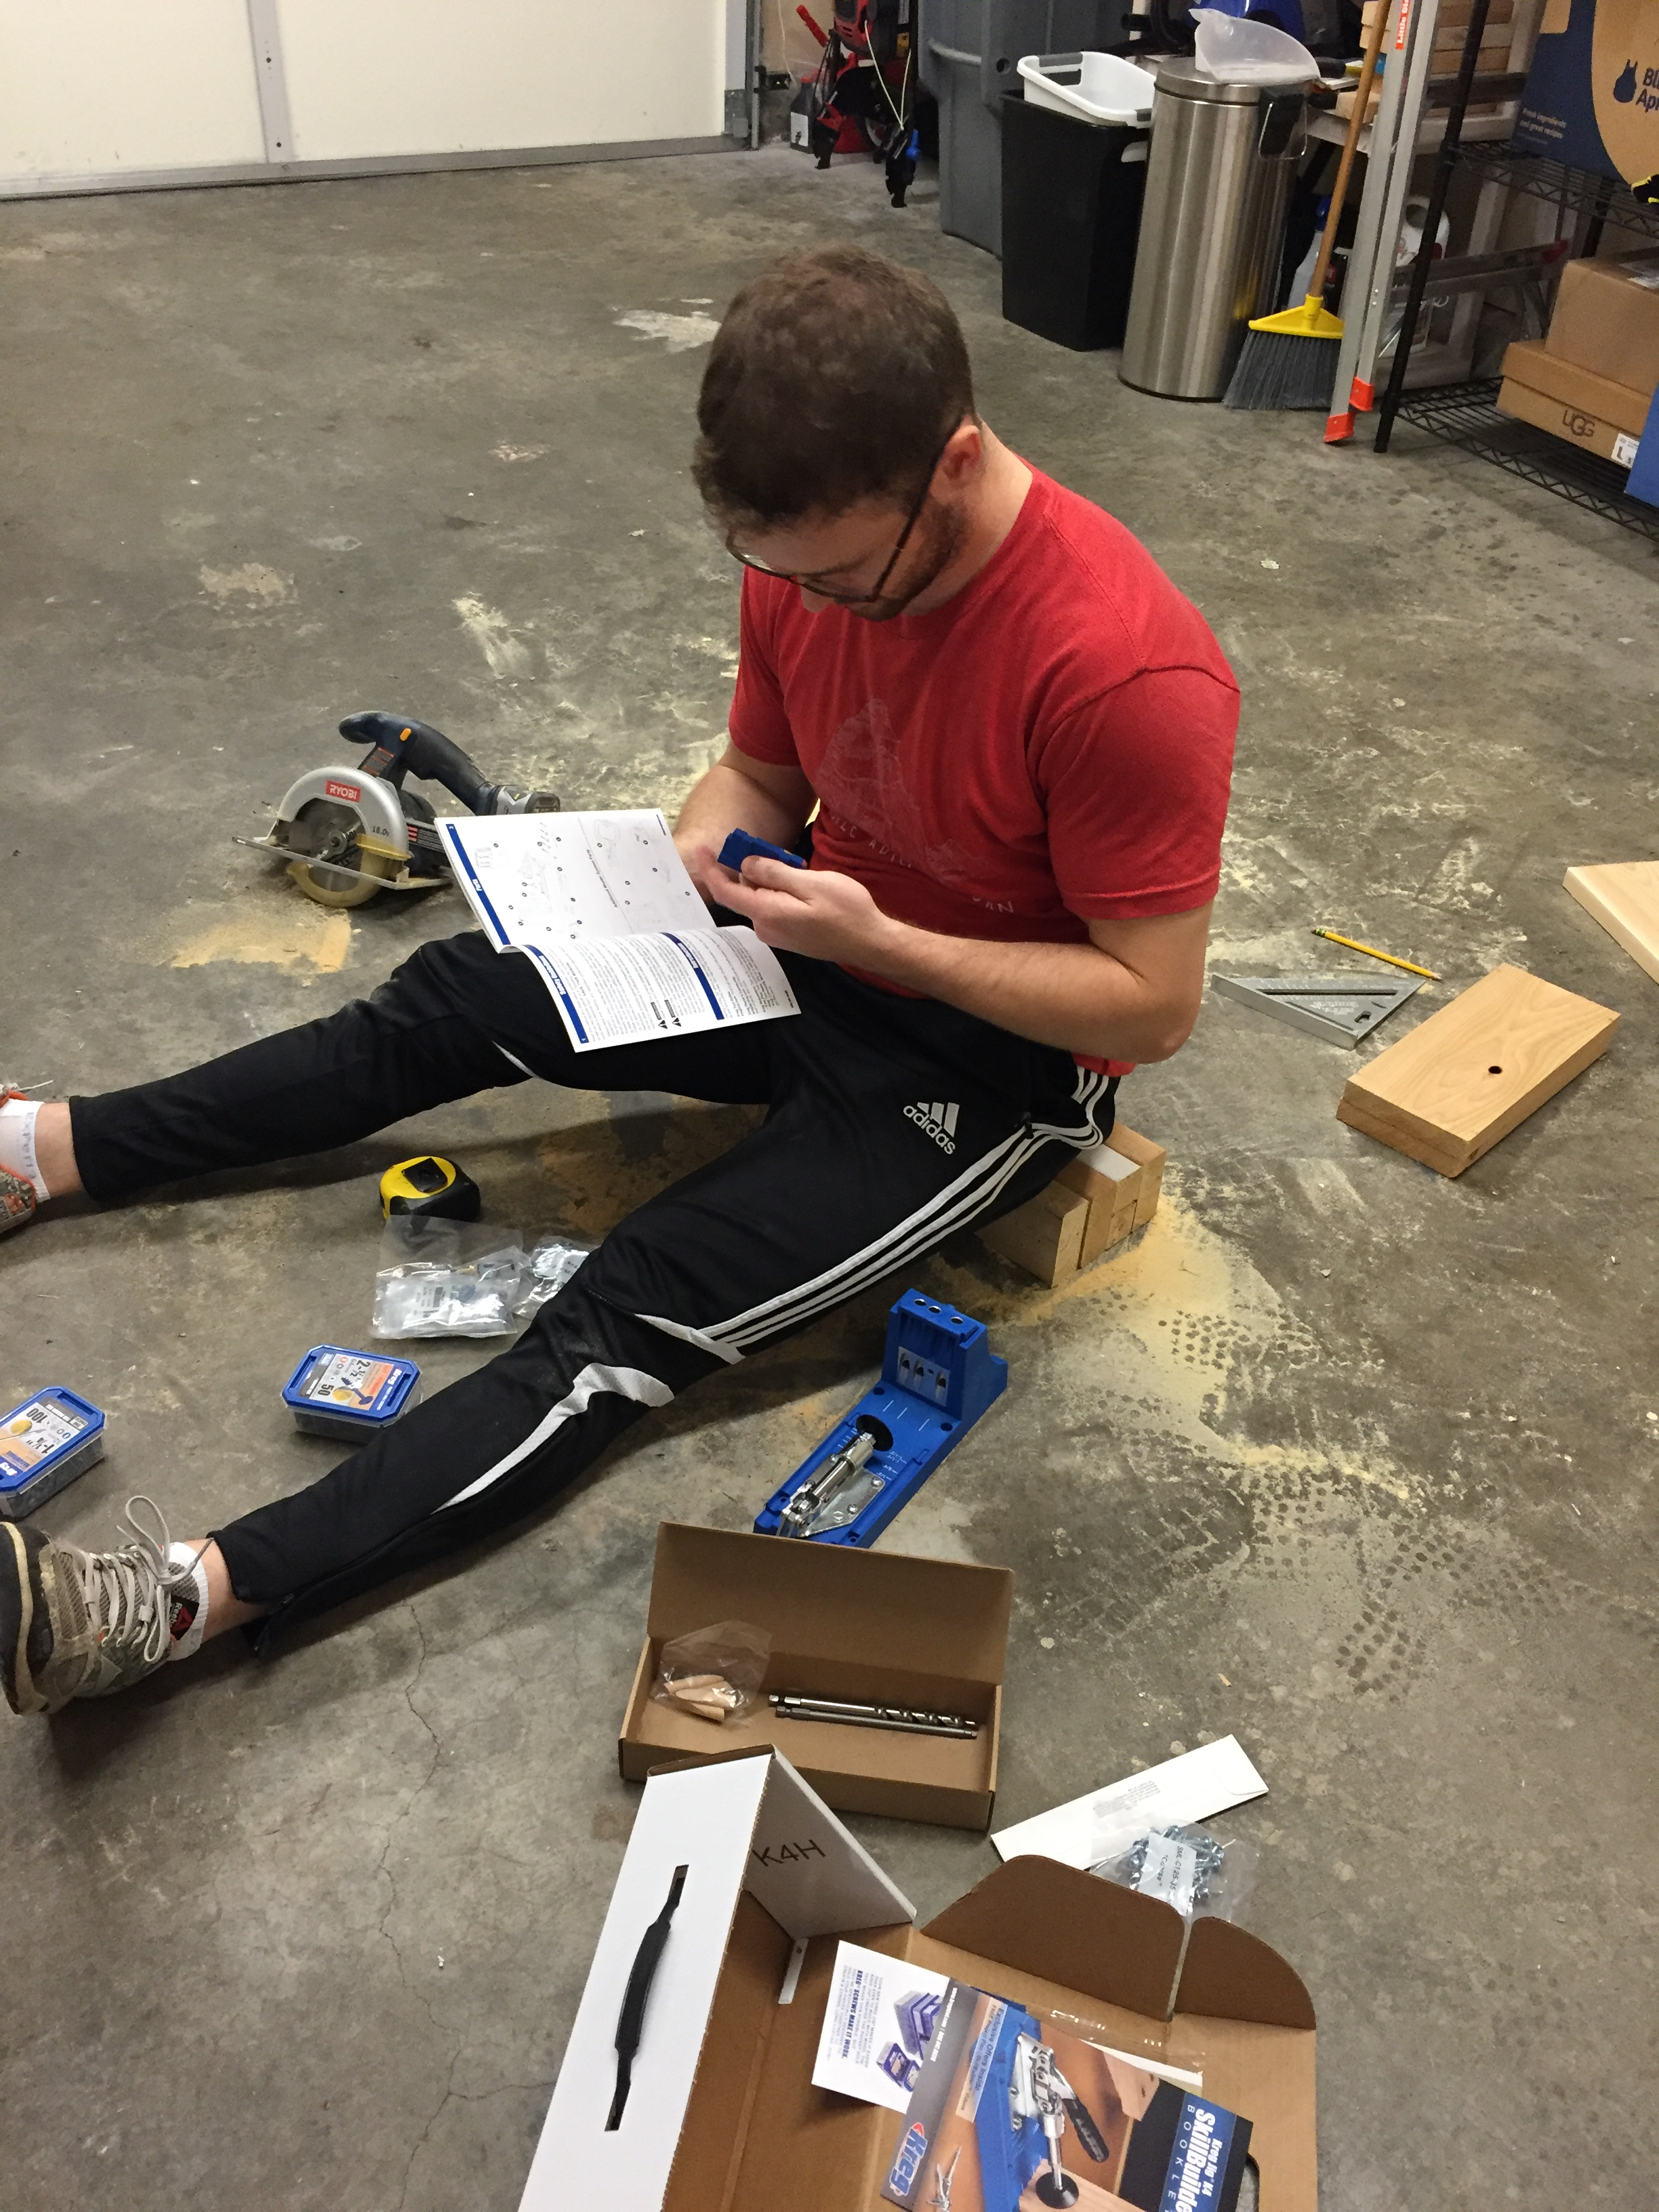 Being cool and reading the instructions for the Kreg Jig